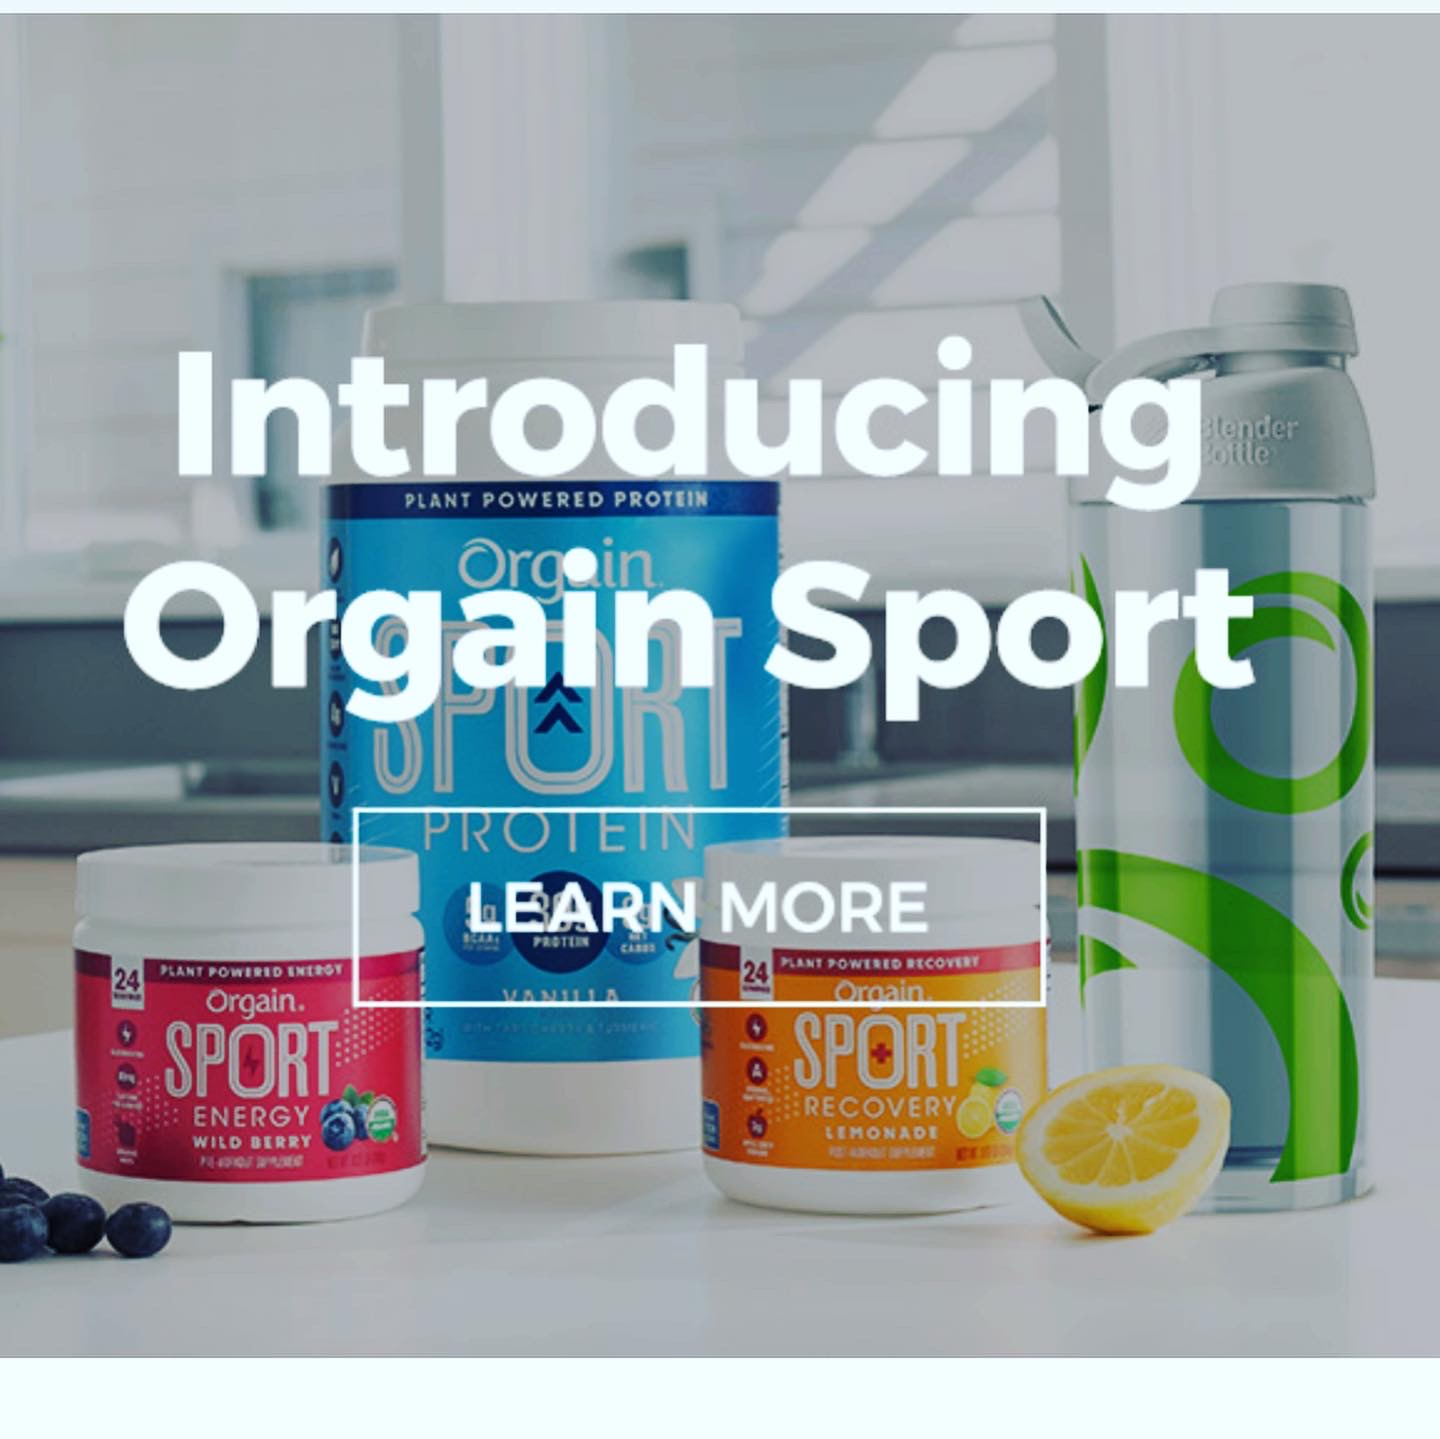 Orgain sports protein shakes natural health shawn rene zimmerman promo codes